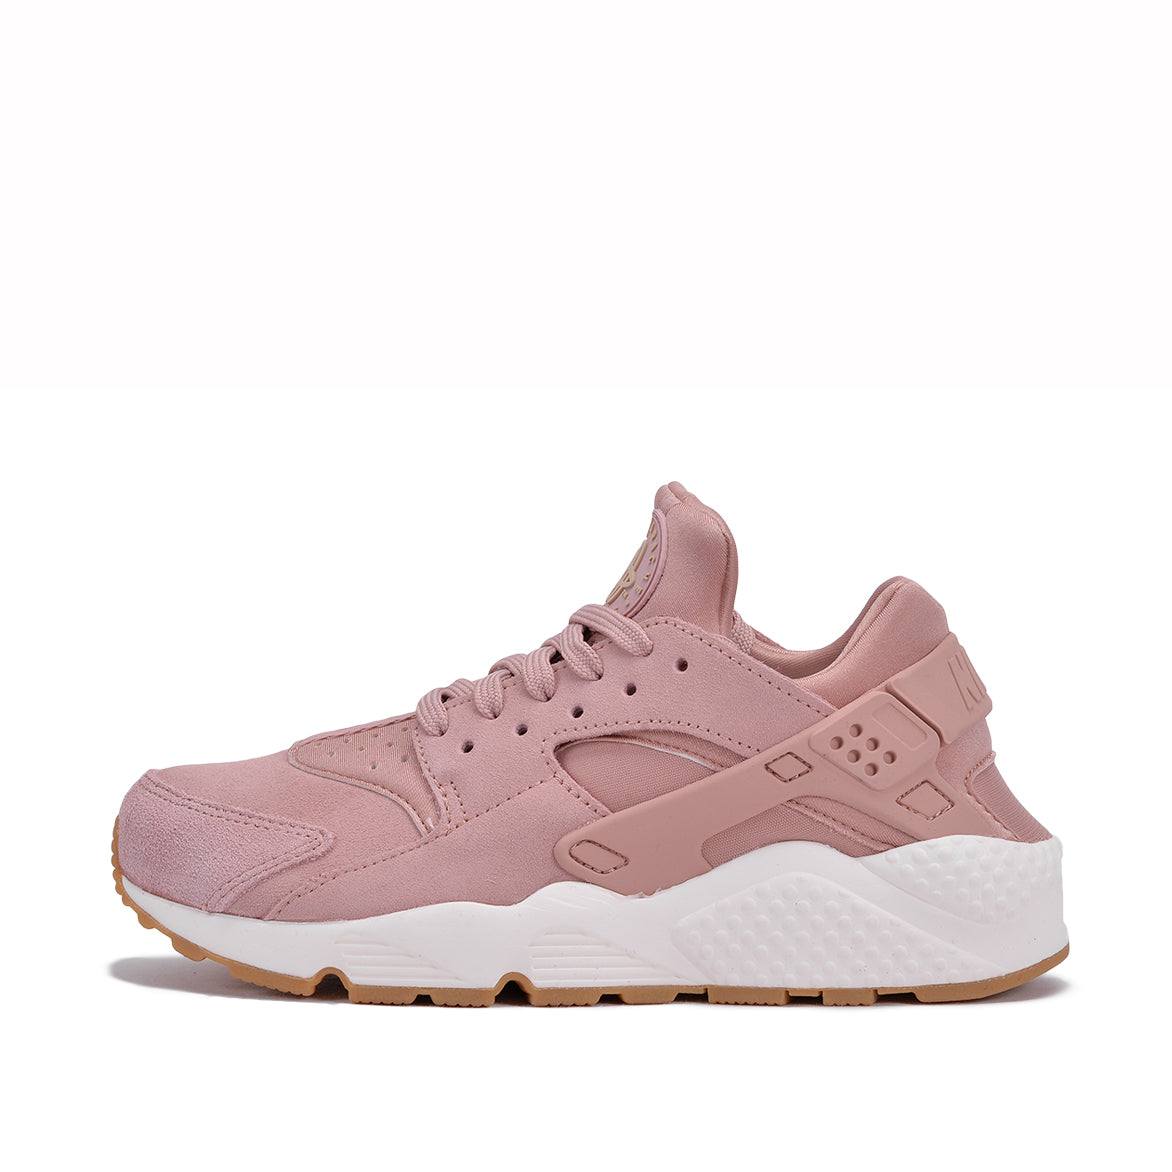 6f10f82c50fc WMNS AIR HUARACHE RUN SD - PARTICLE PINK